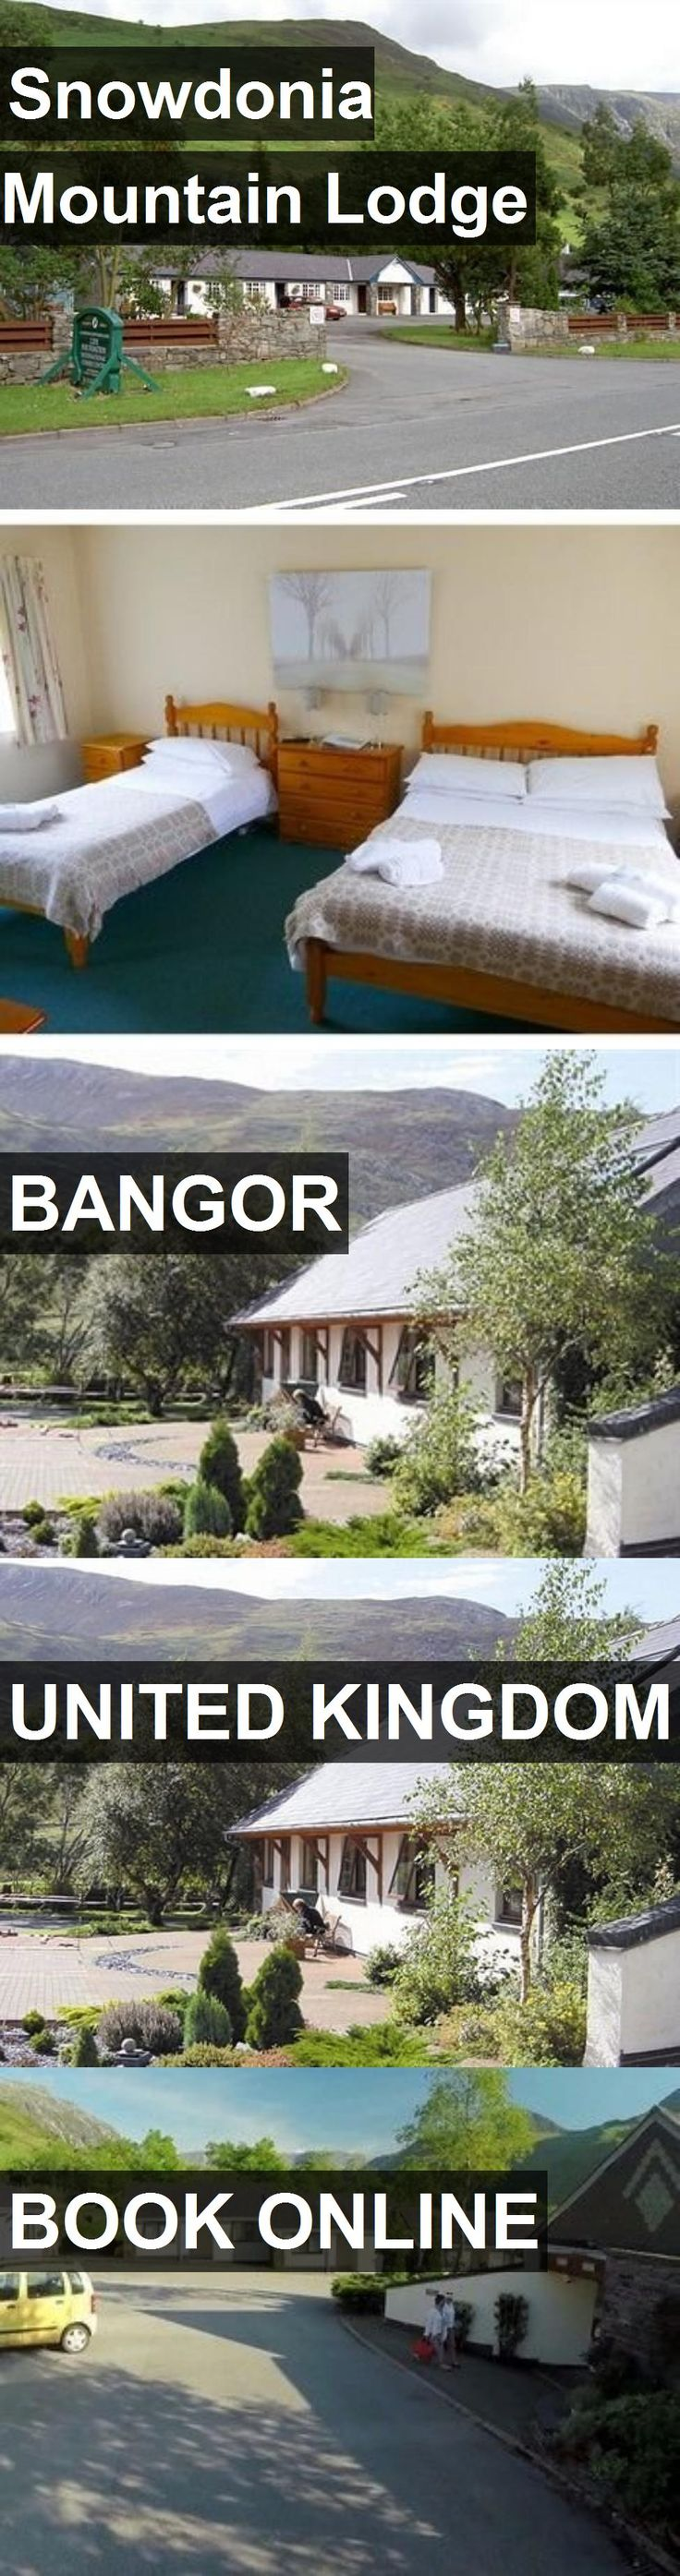 Hotel Snowdonia Mountain Lodge in Bangor, United Kingdom. For more information, photos, reviews and best prices please follow the link. #UnitedKingdom #Bangor #travel #vacation #hotel